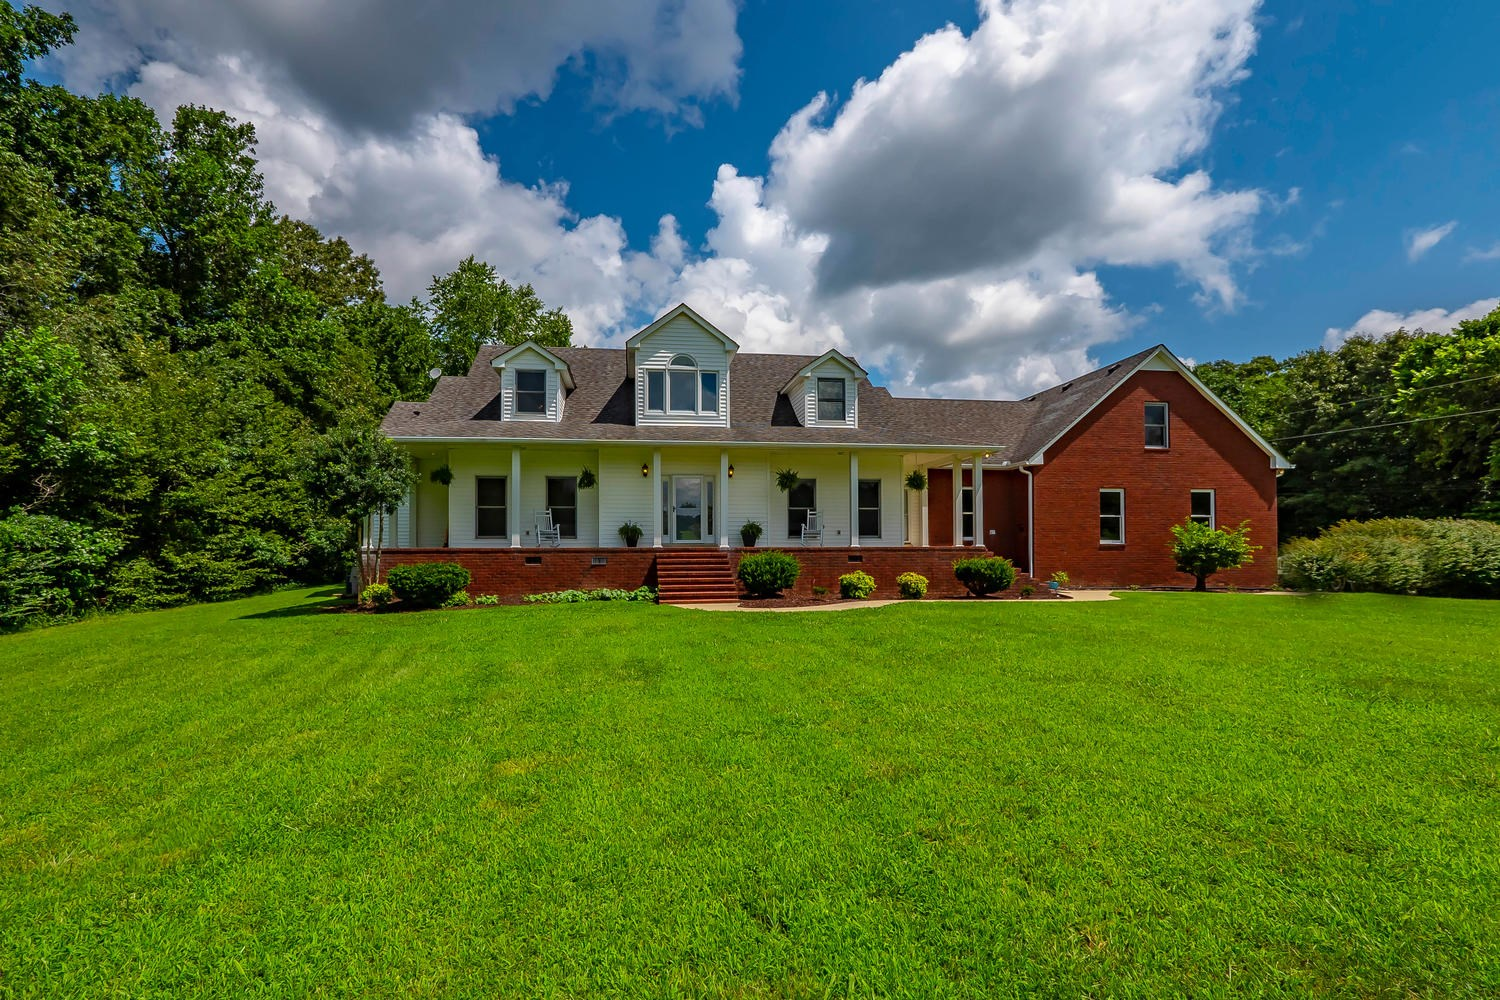 Country Home For Sale in Middle Tennessee!